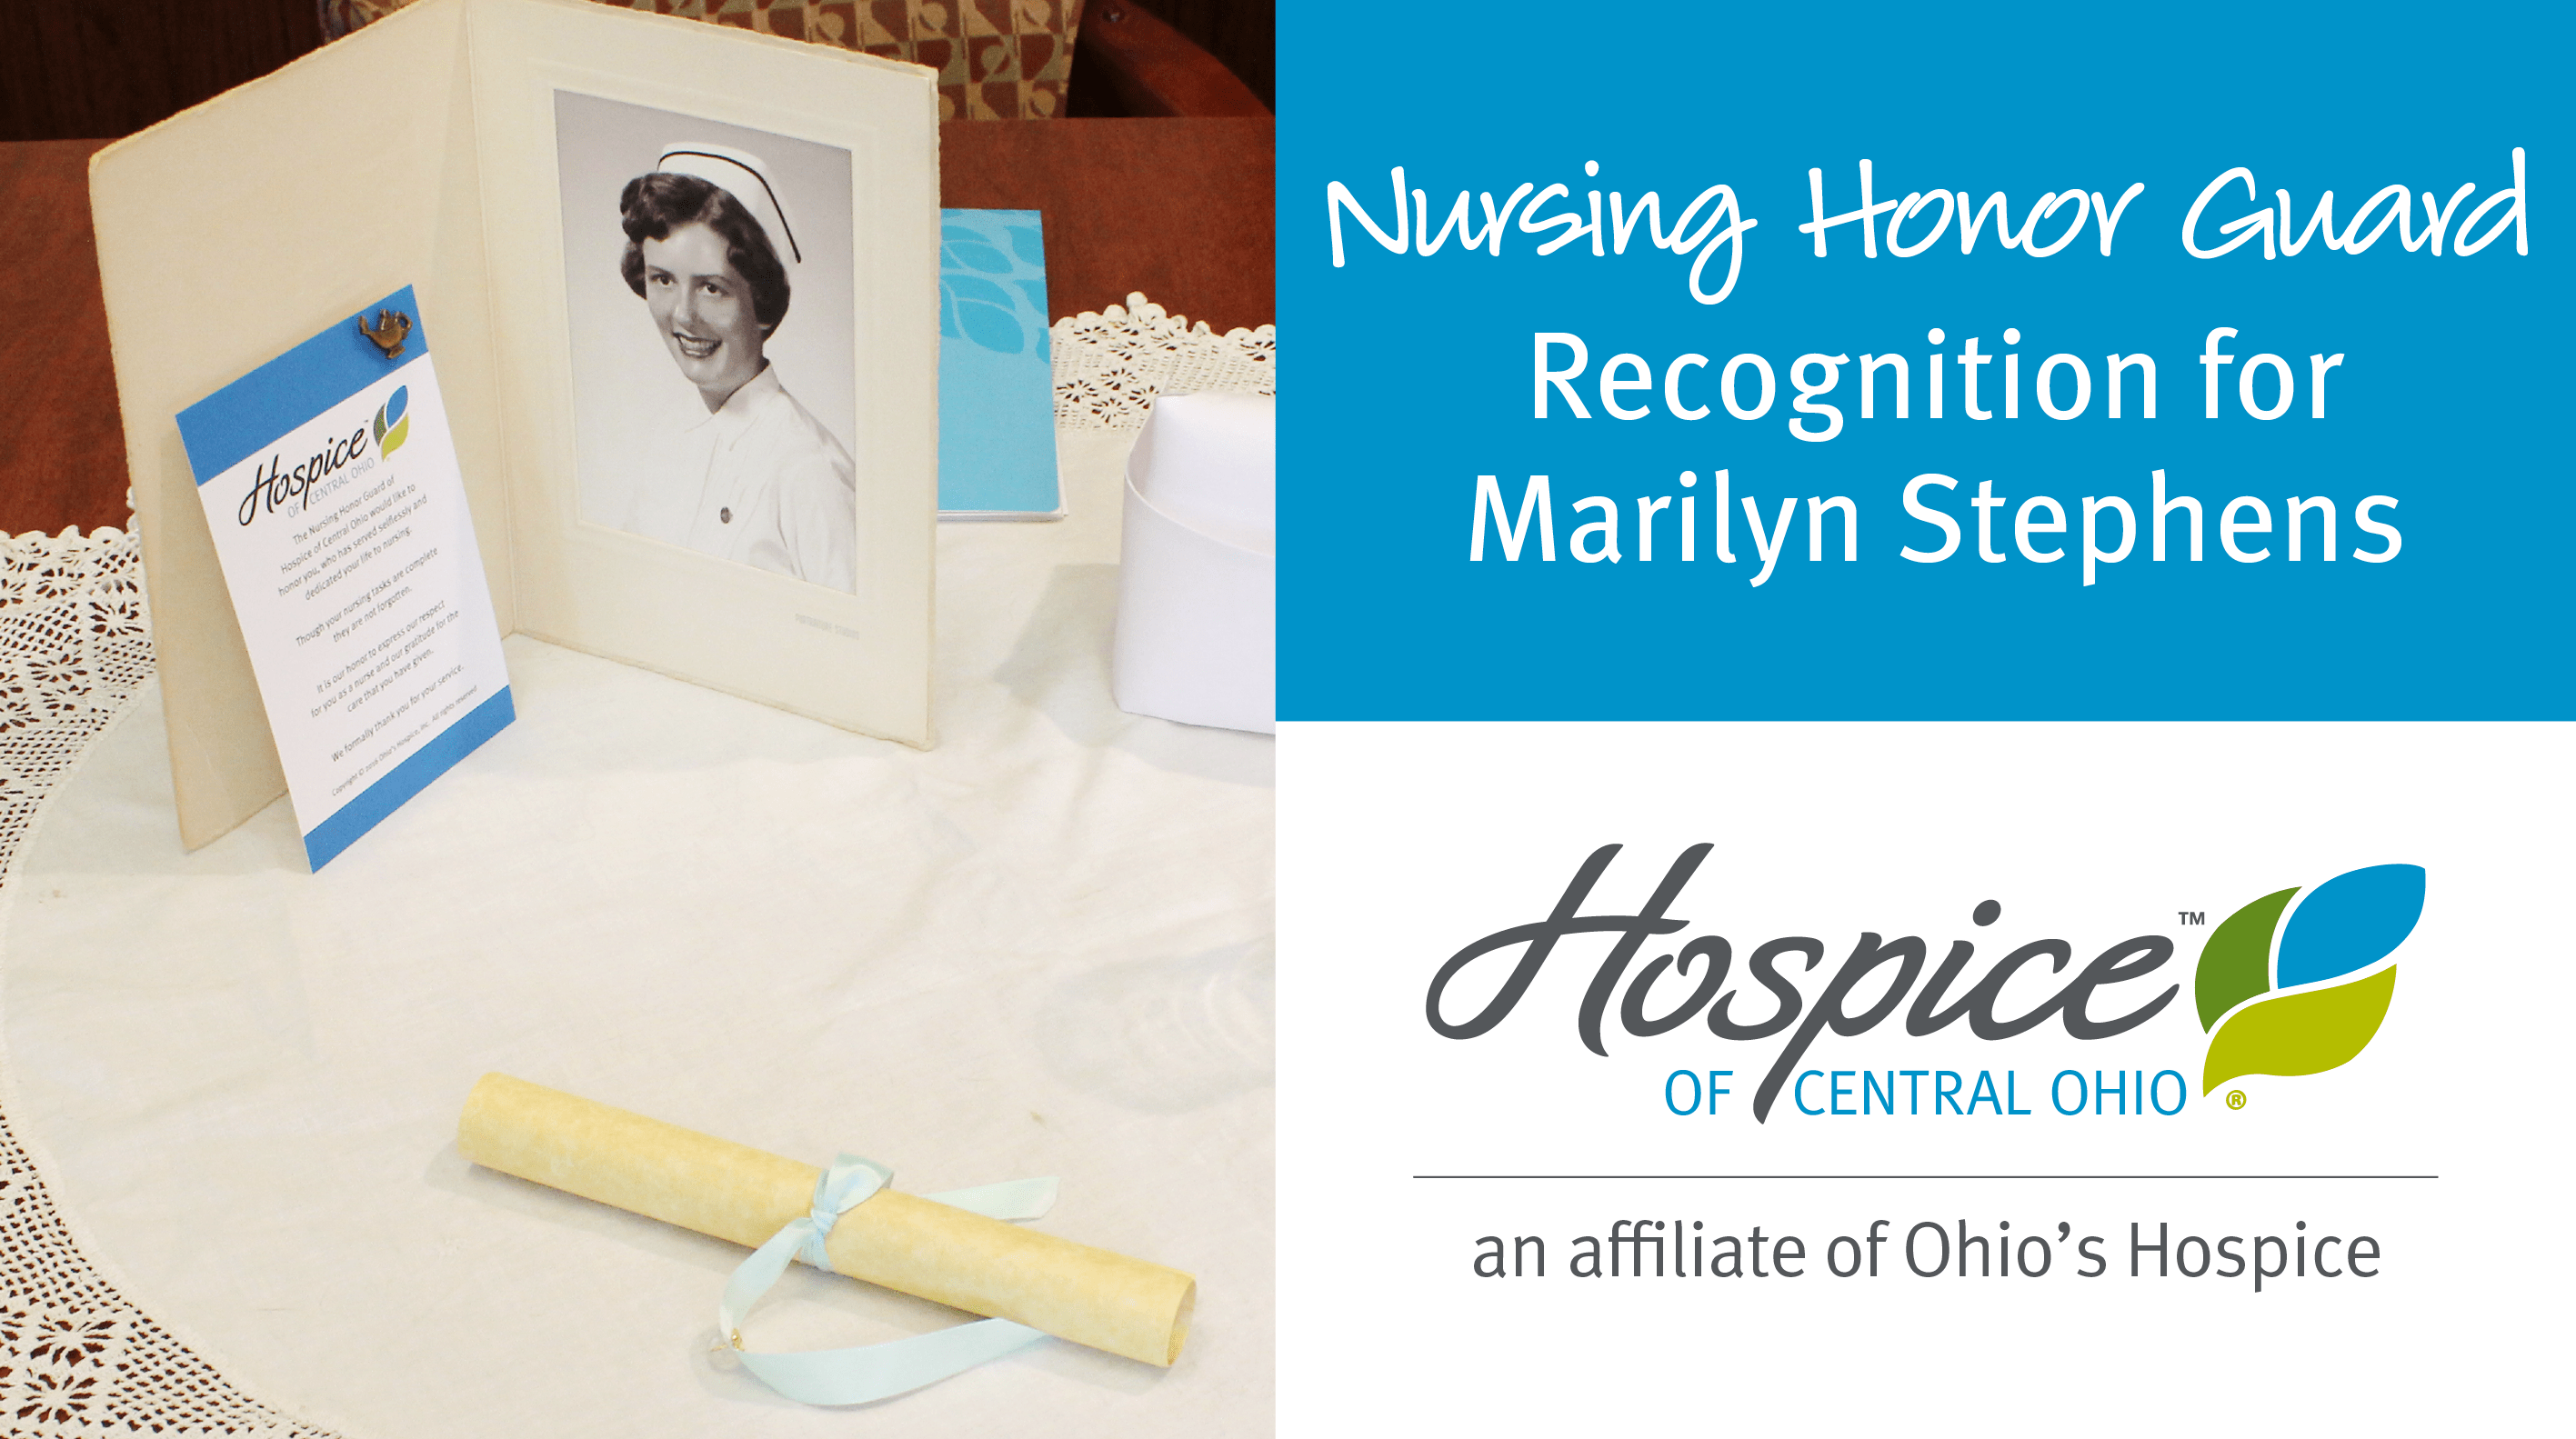 Nursing Honor Guard Recognizes Marilyn Stephens